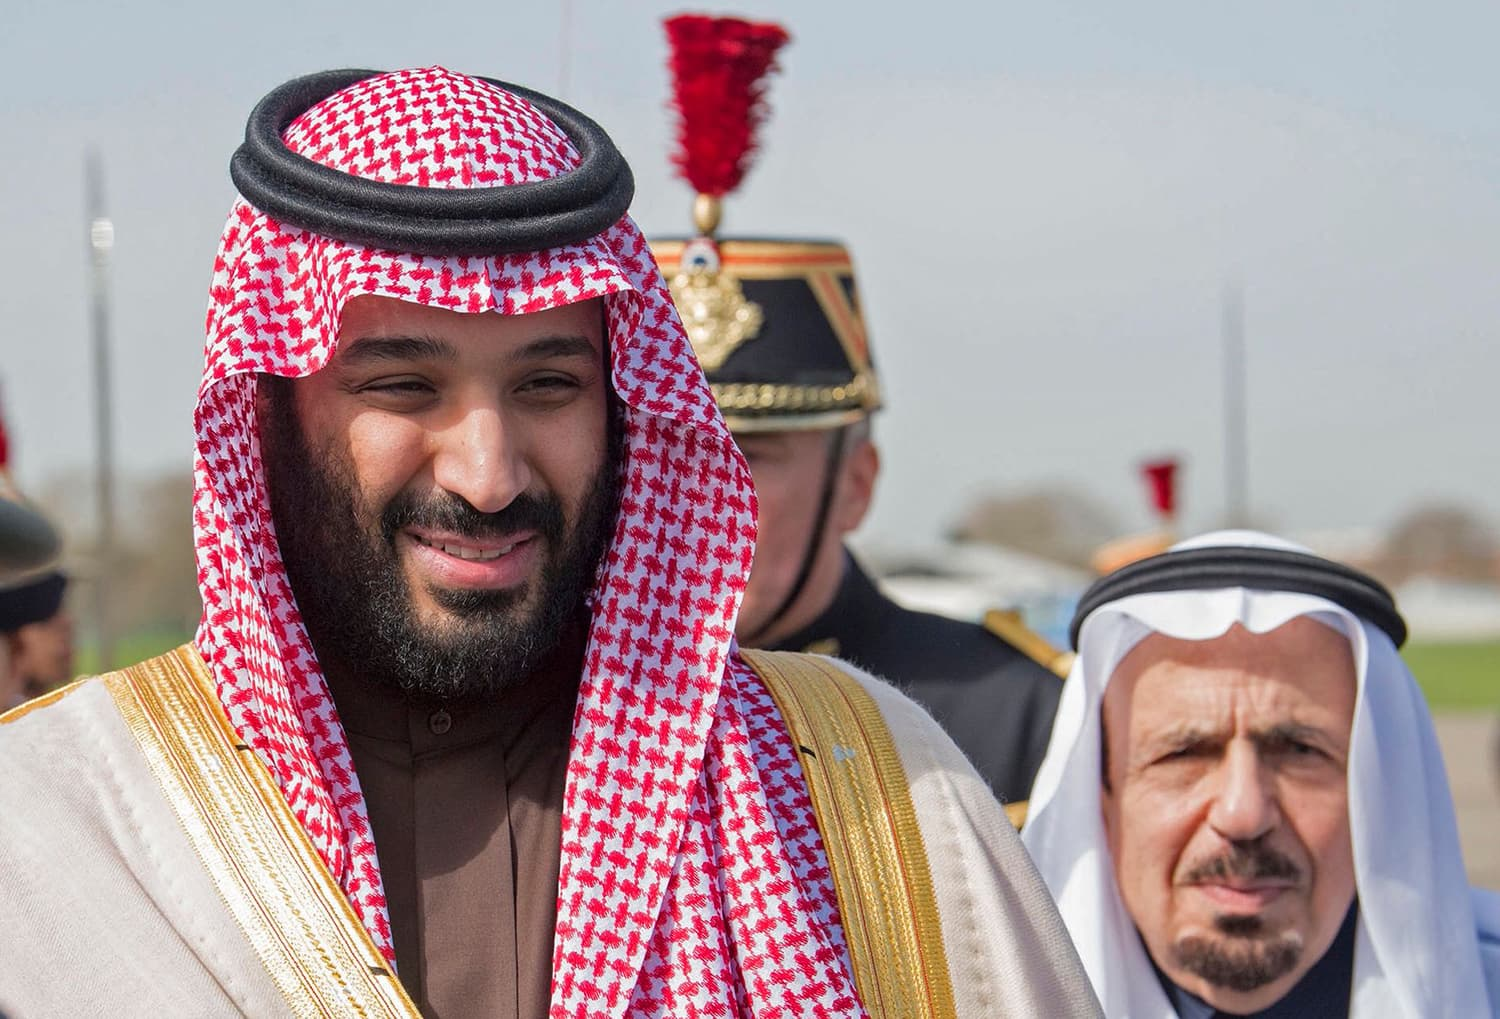 Saudi Arabia's crown prince Prince Mohammed bin Salman (L) arrives at Le Bourget airport, north of Paris, on April 8, 2018, ahead of a state visit. — AFP